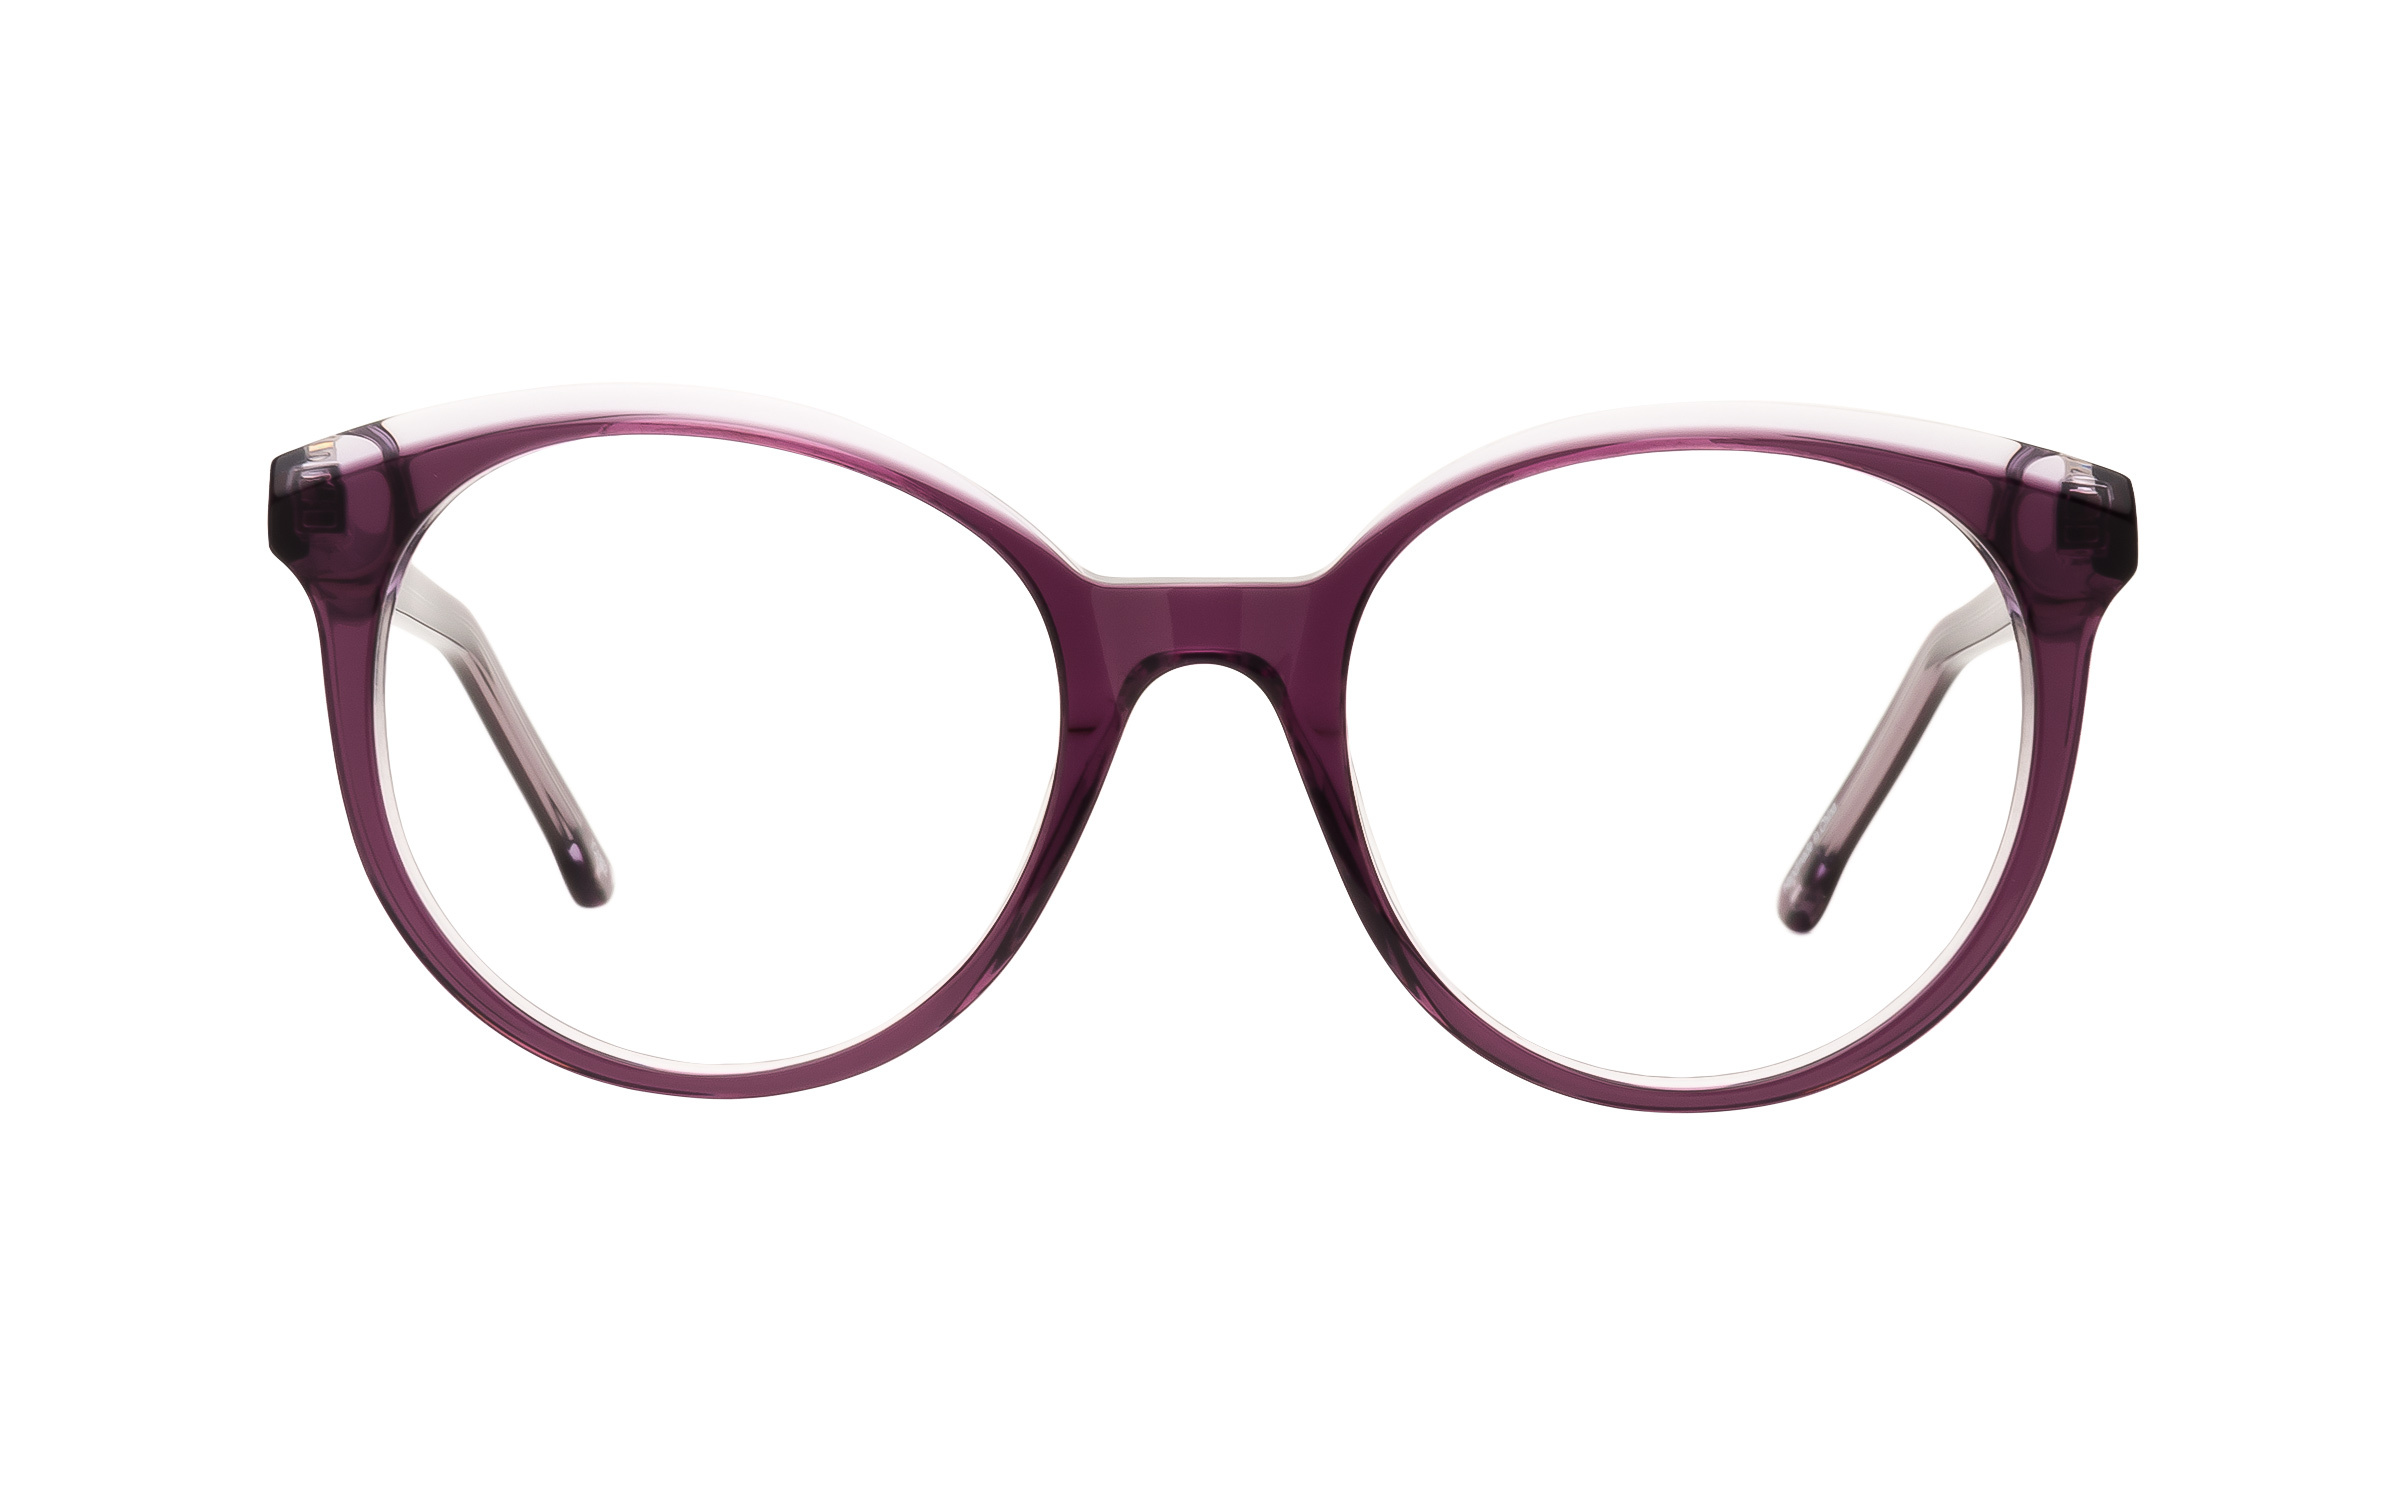 Clear, Purple Palace Derek Cardigan Glasses - Clearly Glasses Online